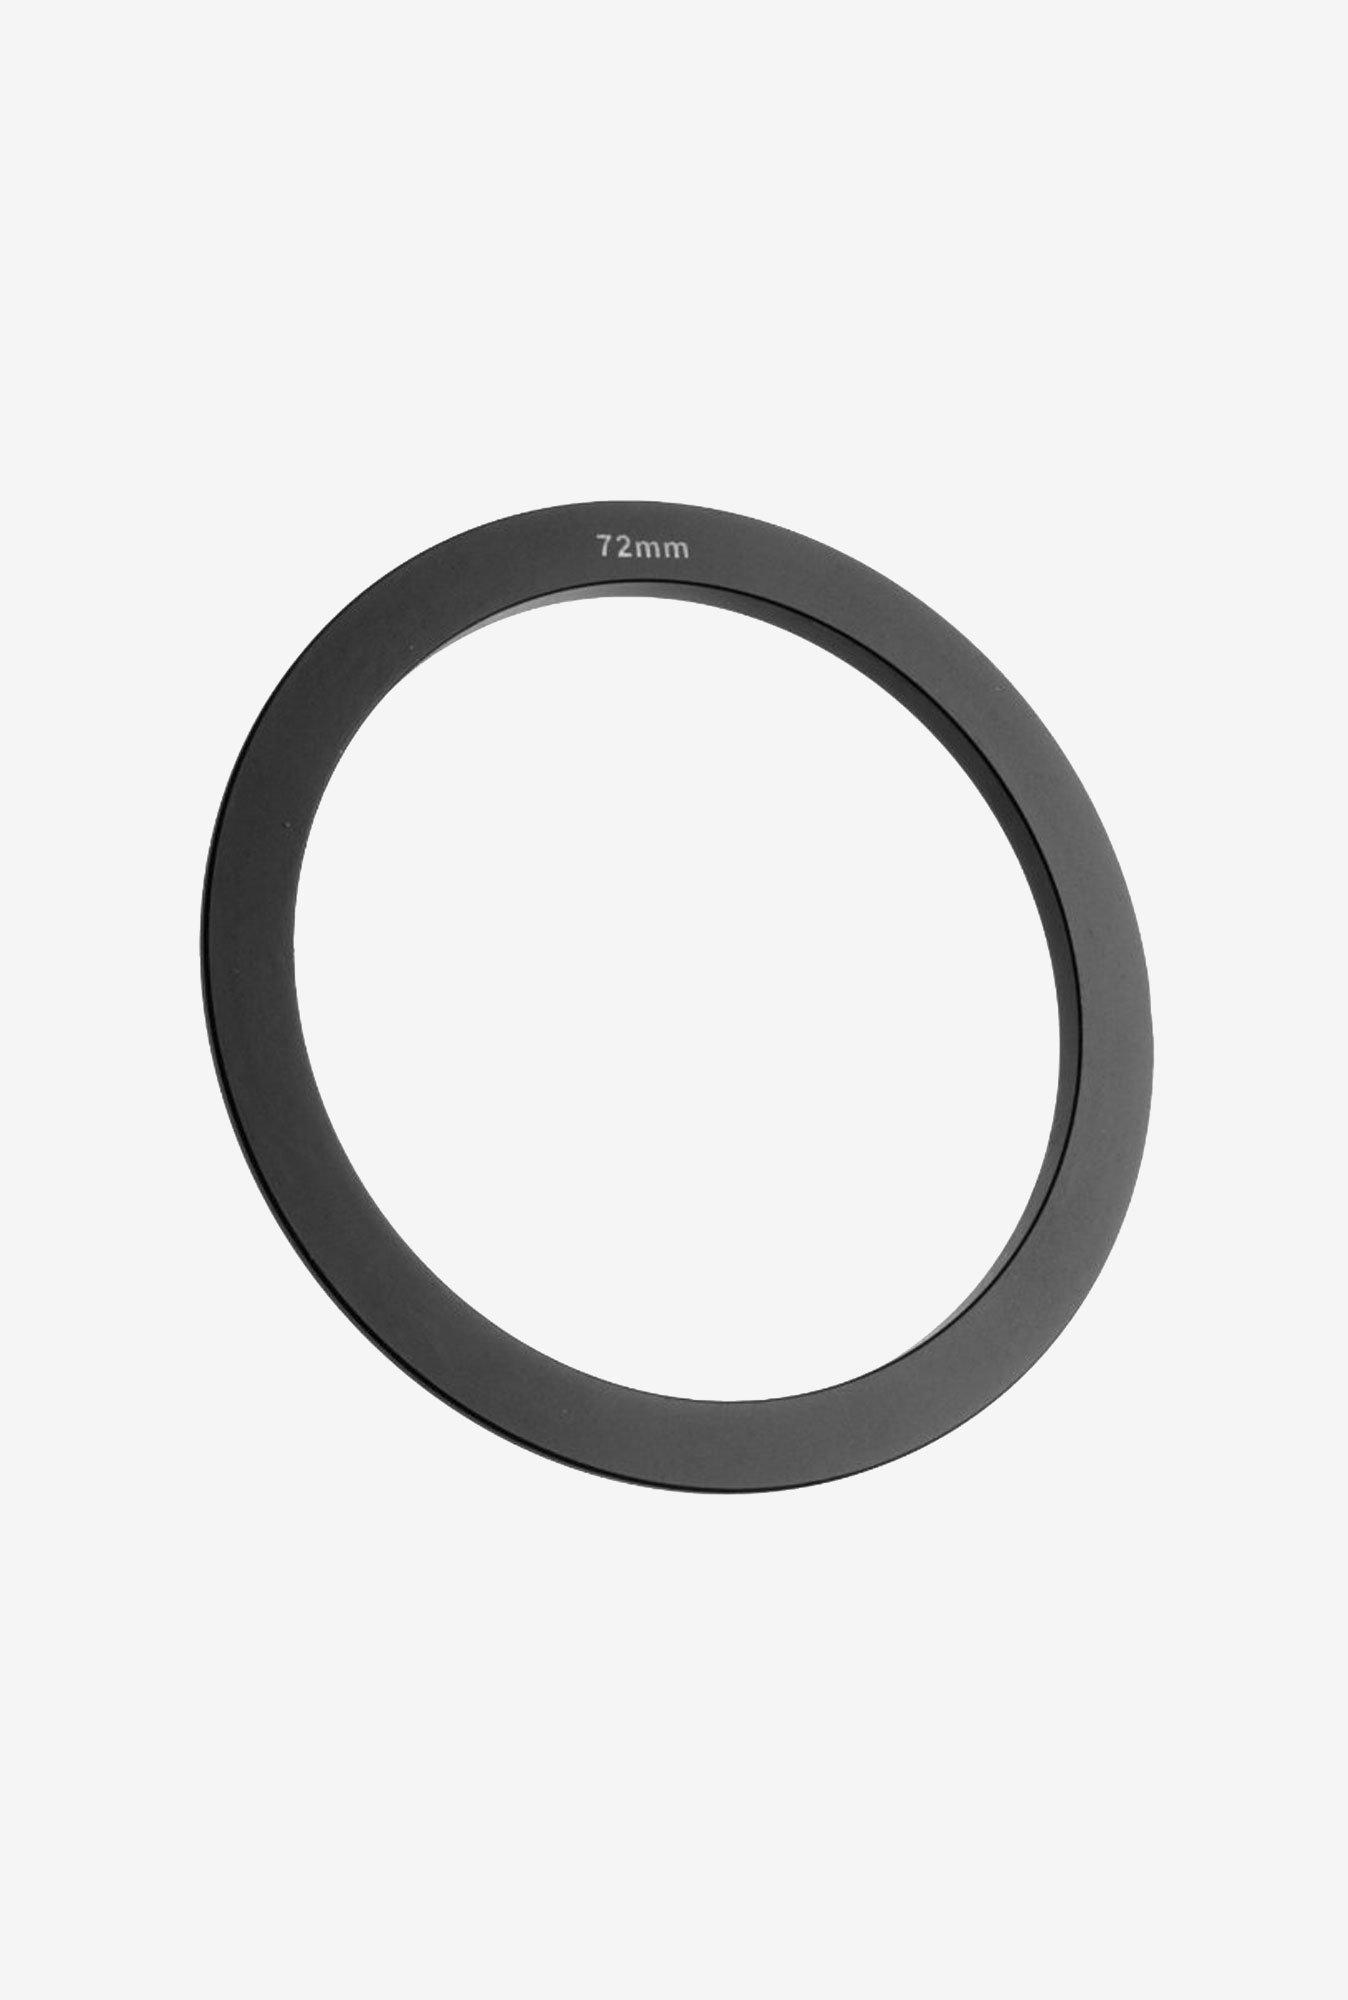 Formatt-Hitech 49 mm Adaptor for Aluminium Holder (Black)